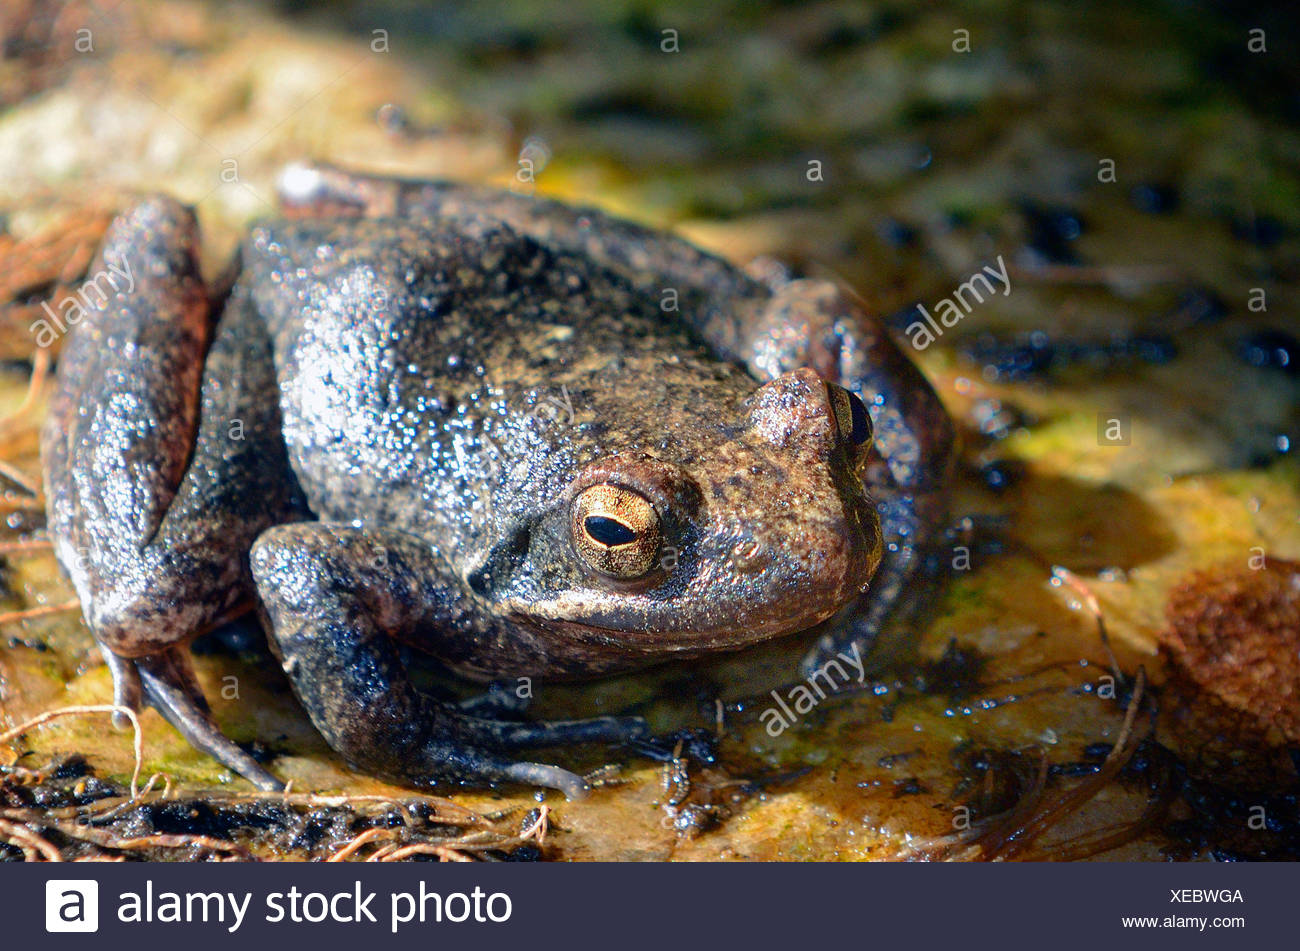 Italian stream frog (Rana italica), Italien stream frog sitting at a mountain creek at Aspromonte National Park, Italy, Calabrien, Ben Aspromonte National Park - Stock Image